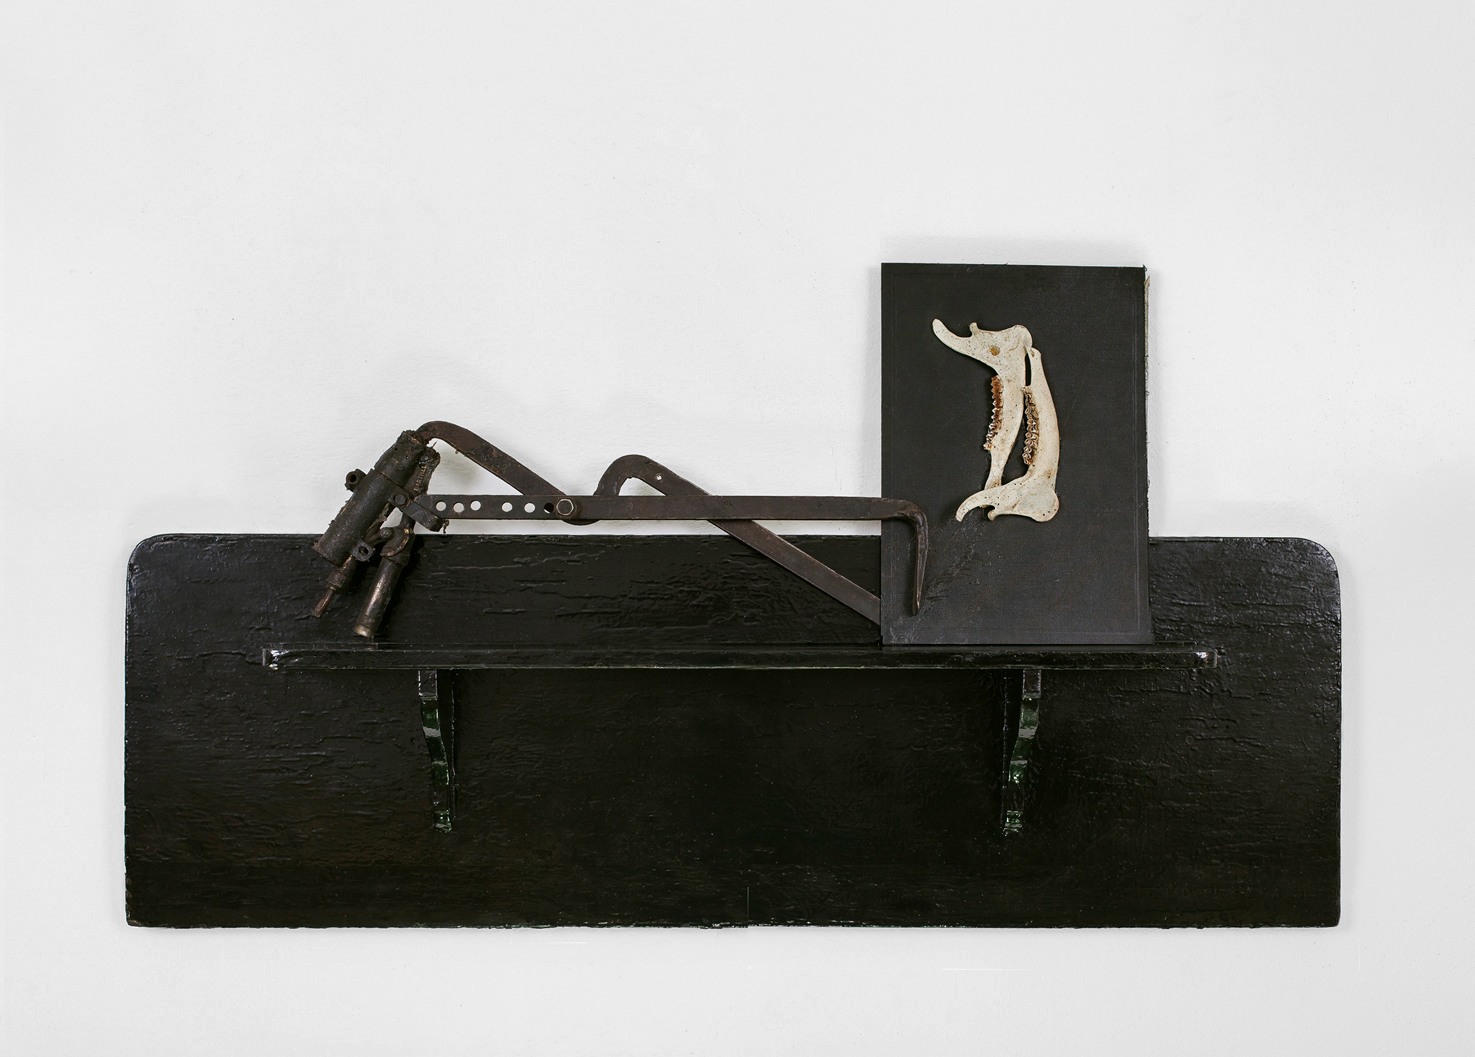 POSSESIA / Implement V / 2013 / 50 x 100 x 12 cm / shelf, old horse anatomy atlas cover, animal mandibles, tool, machinery parts